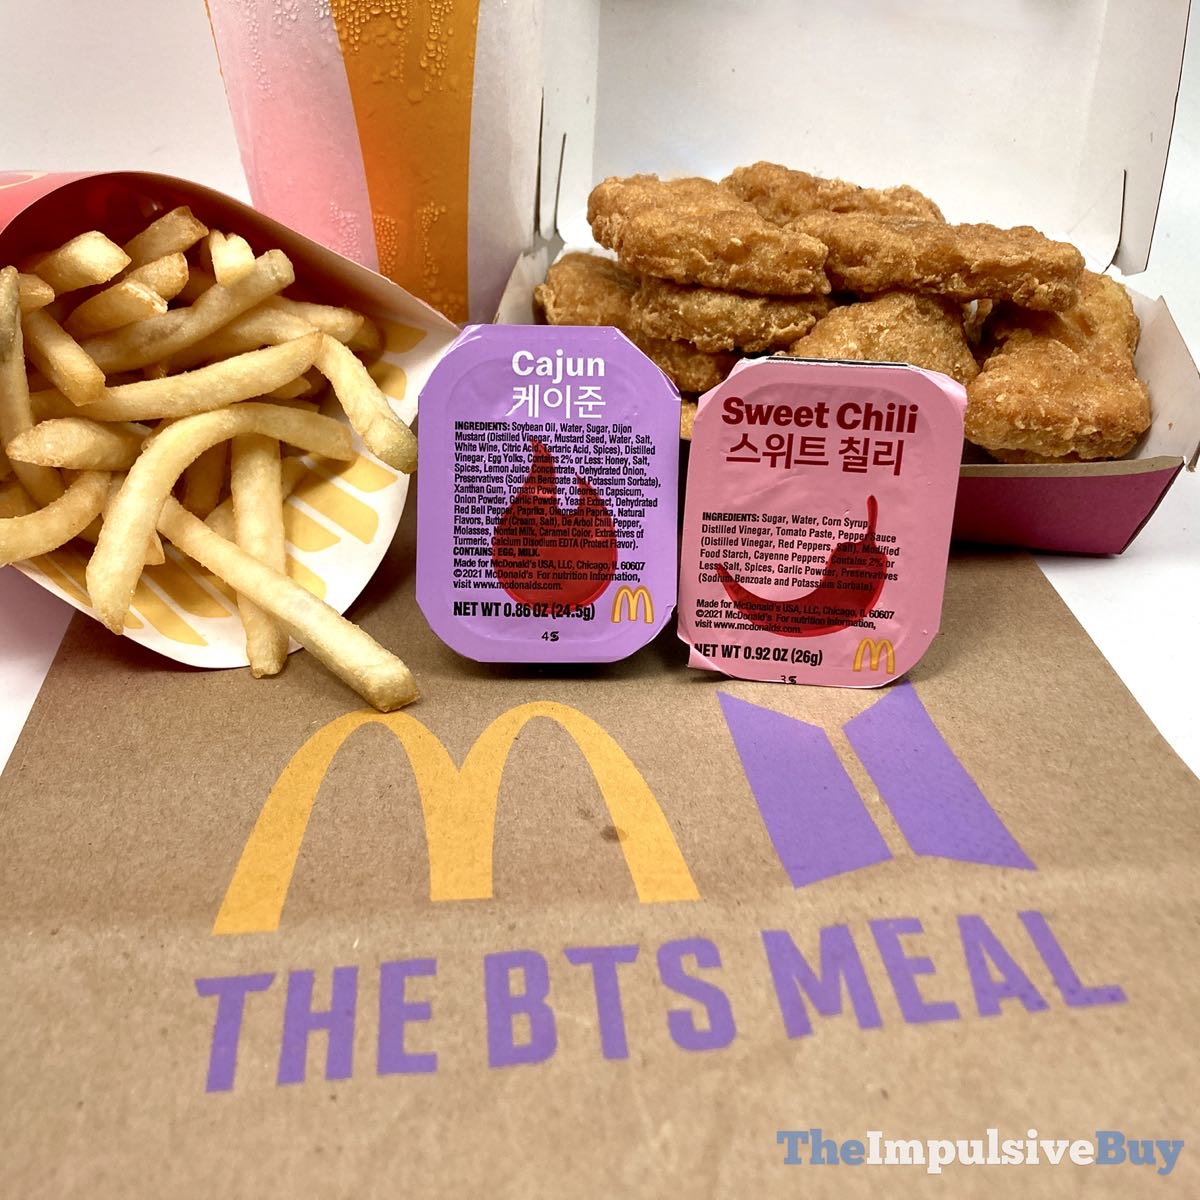 Awesome Bts Meal Menu Sauce wallpapers to download for free greenvirals